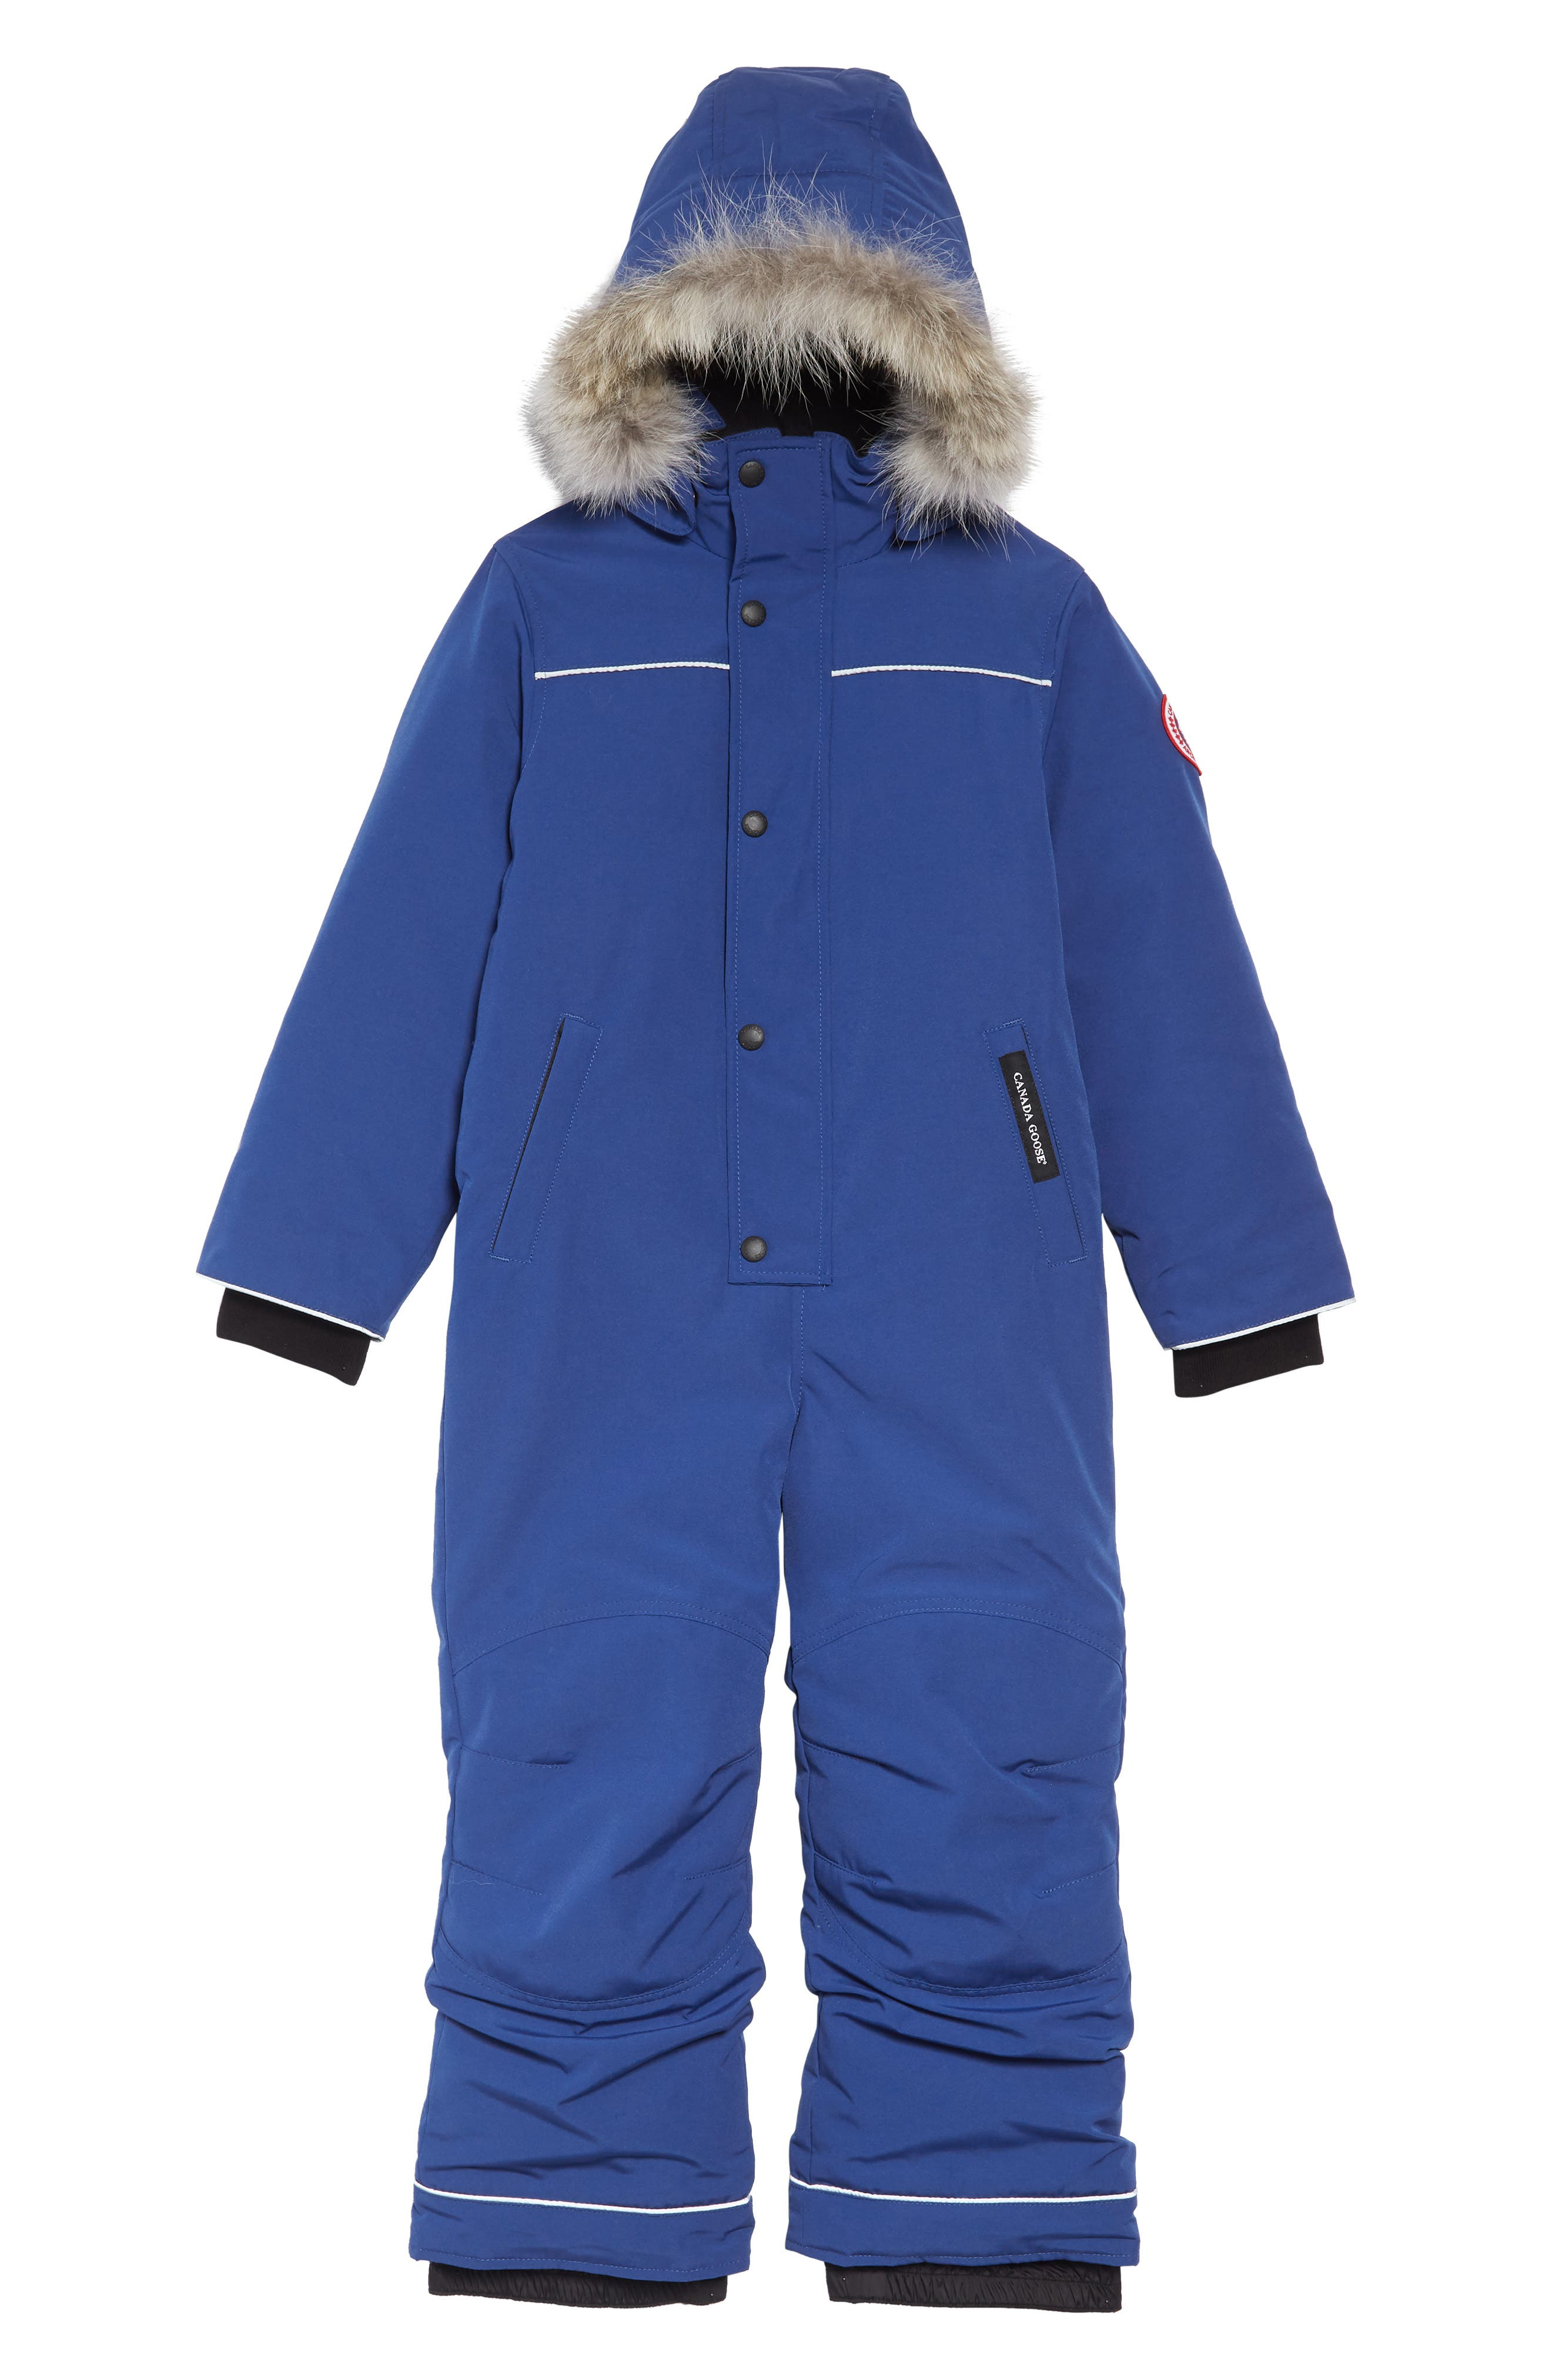 Baby Grizzly Snowsuit with Genuine Coyote Fur Trim,                             Main thumbnail 1, color,                             PACIFIC BLUE